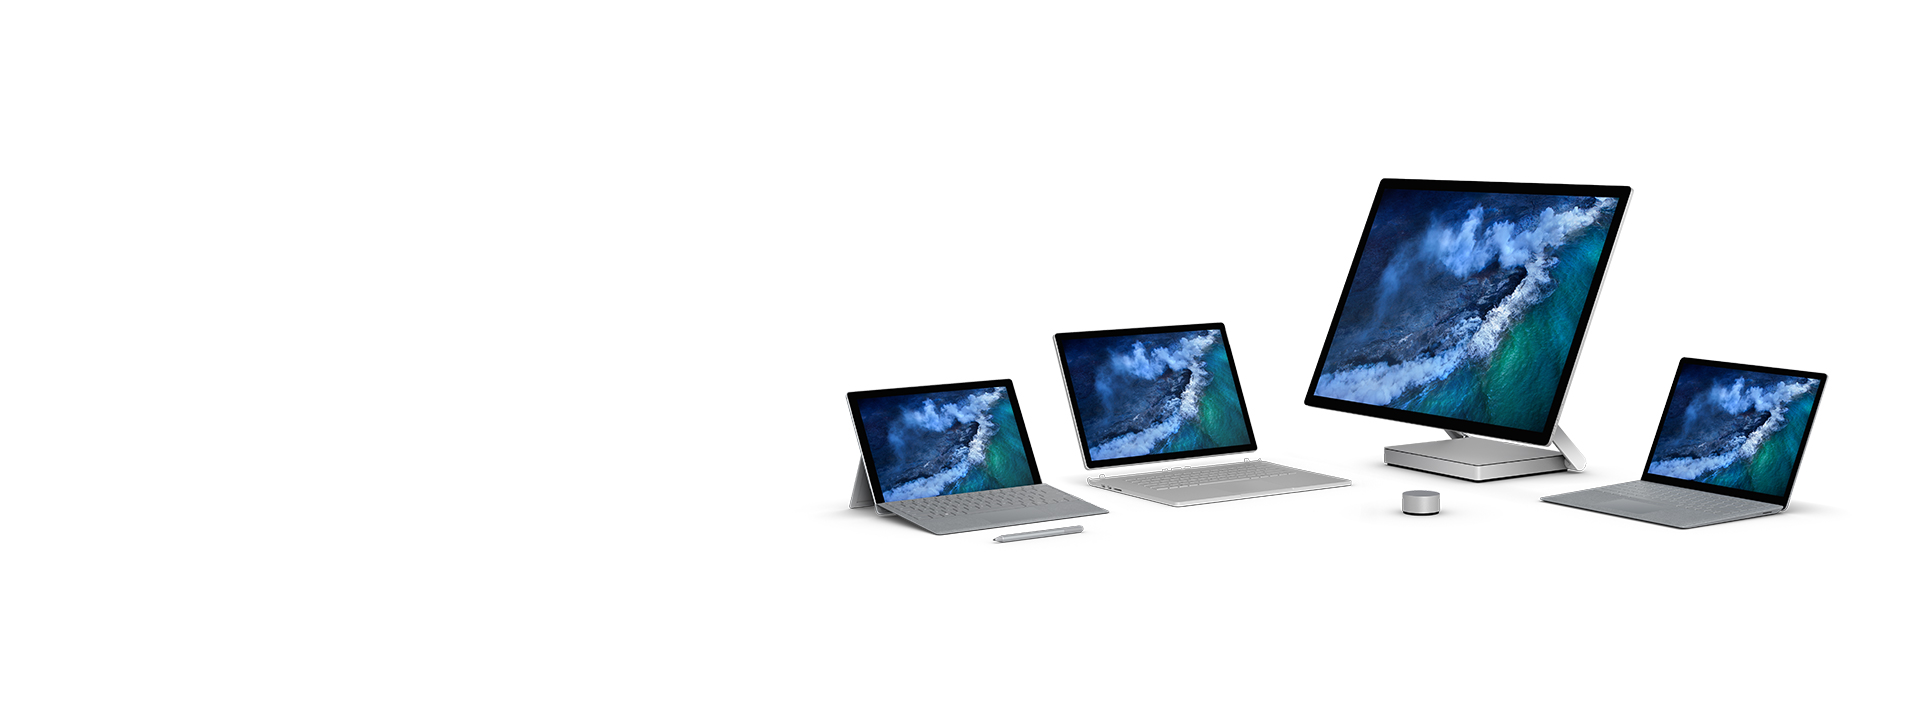 Surface 产品家族 – Surface Pro、Surface Laptop、Surface Book 2 和 Surface Studio